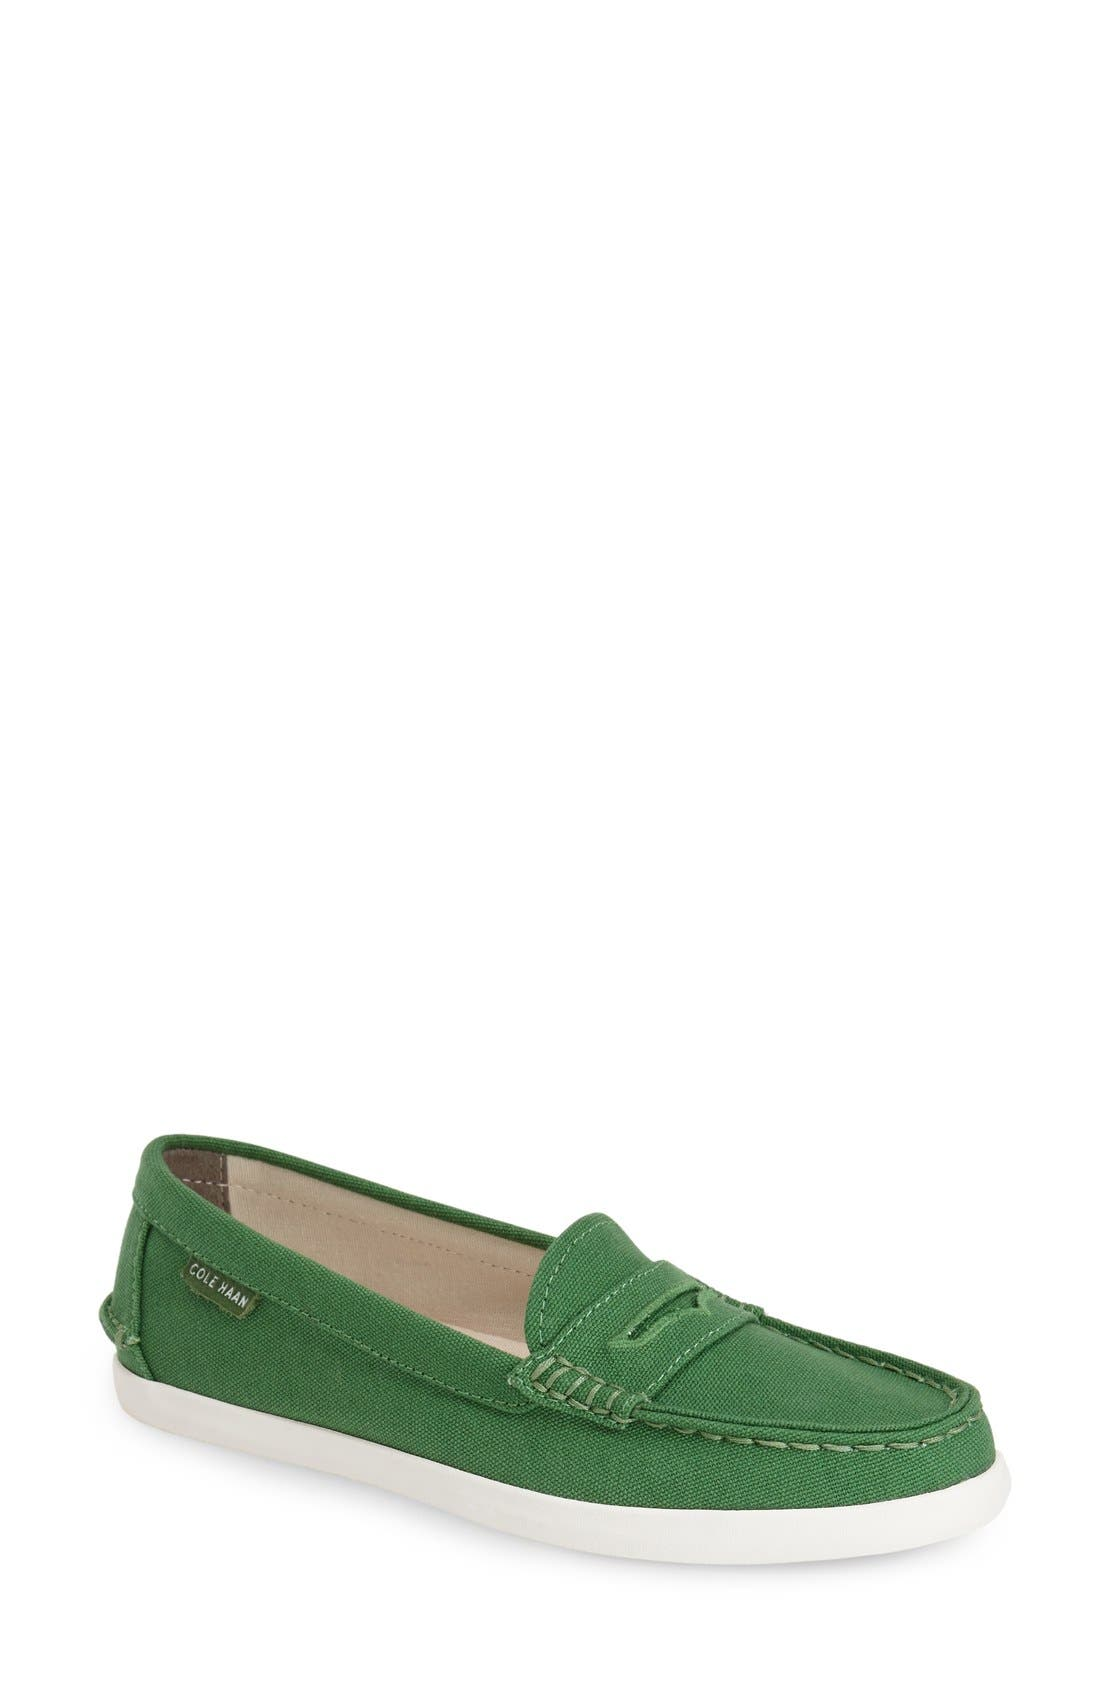 Main Image - Cole Haan 'Pinch' Penny Loafer (Women)